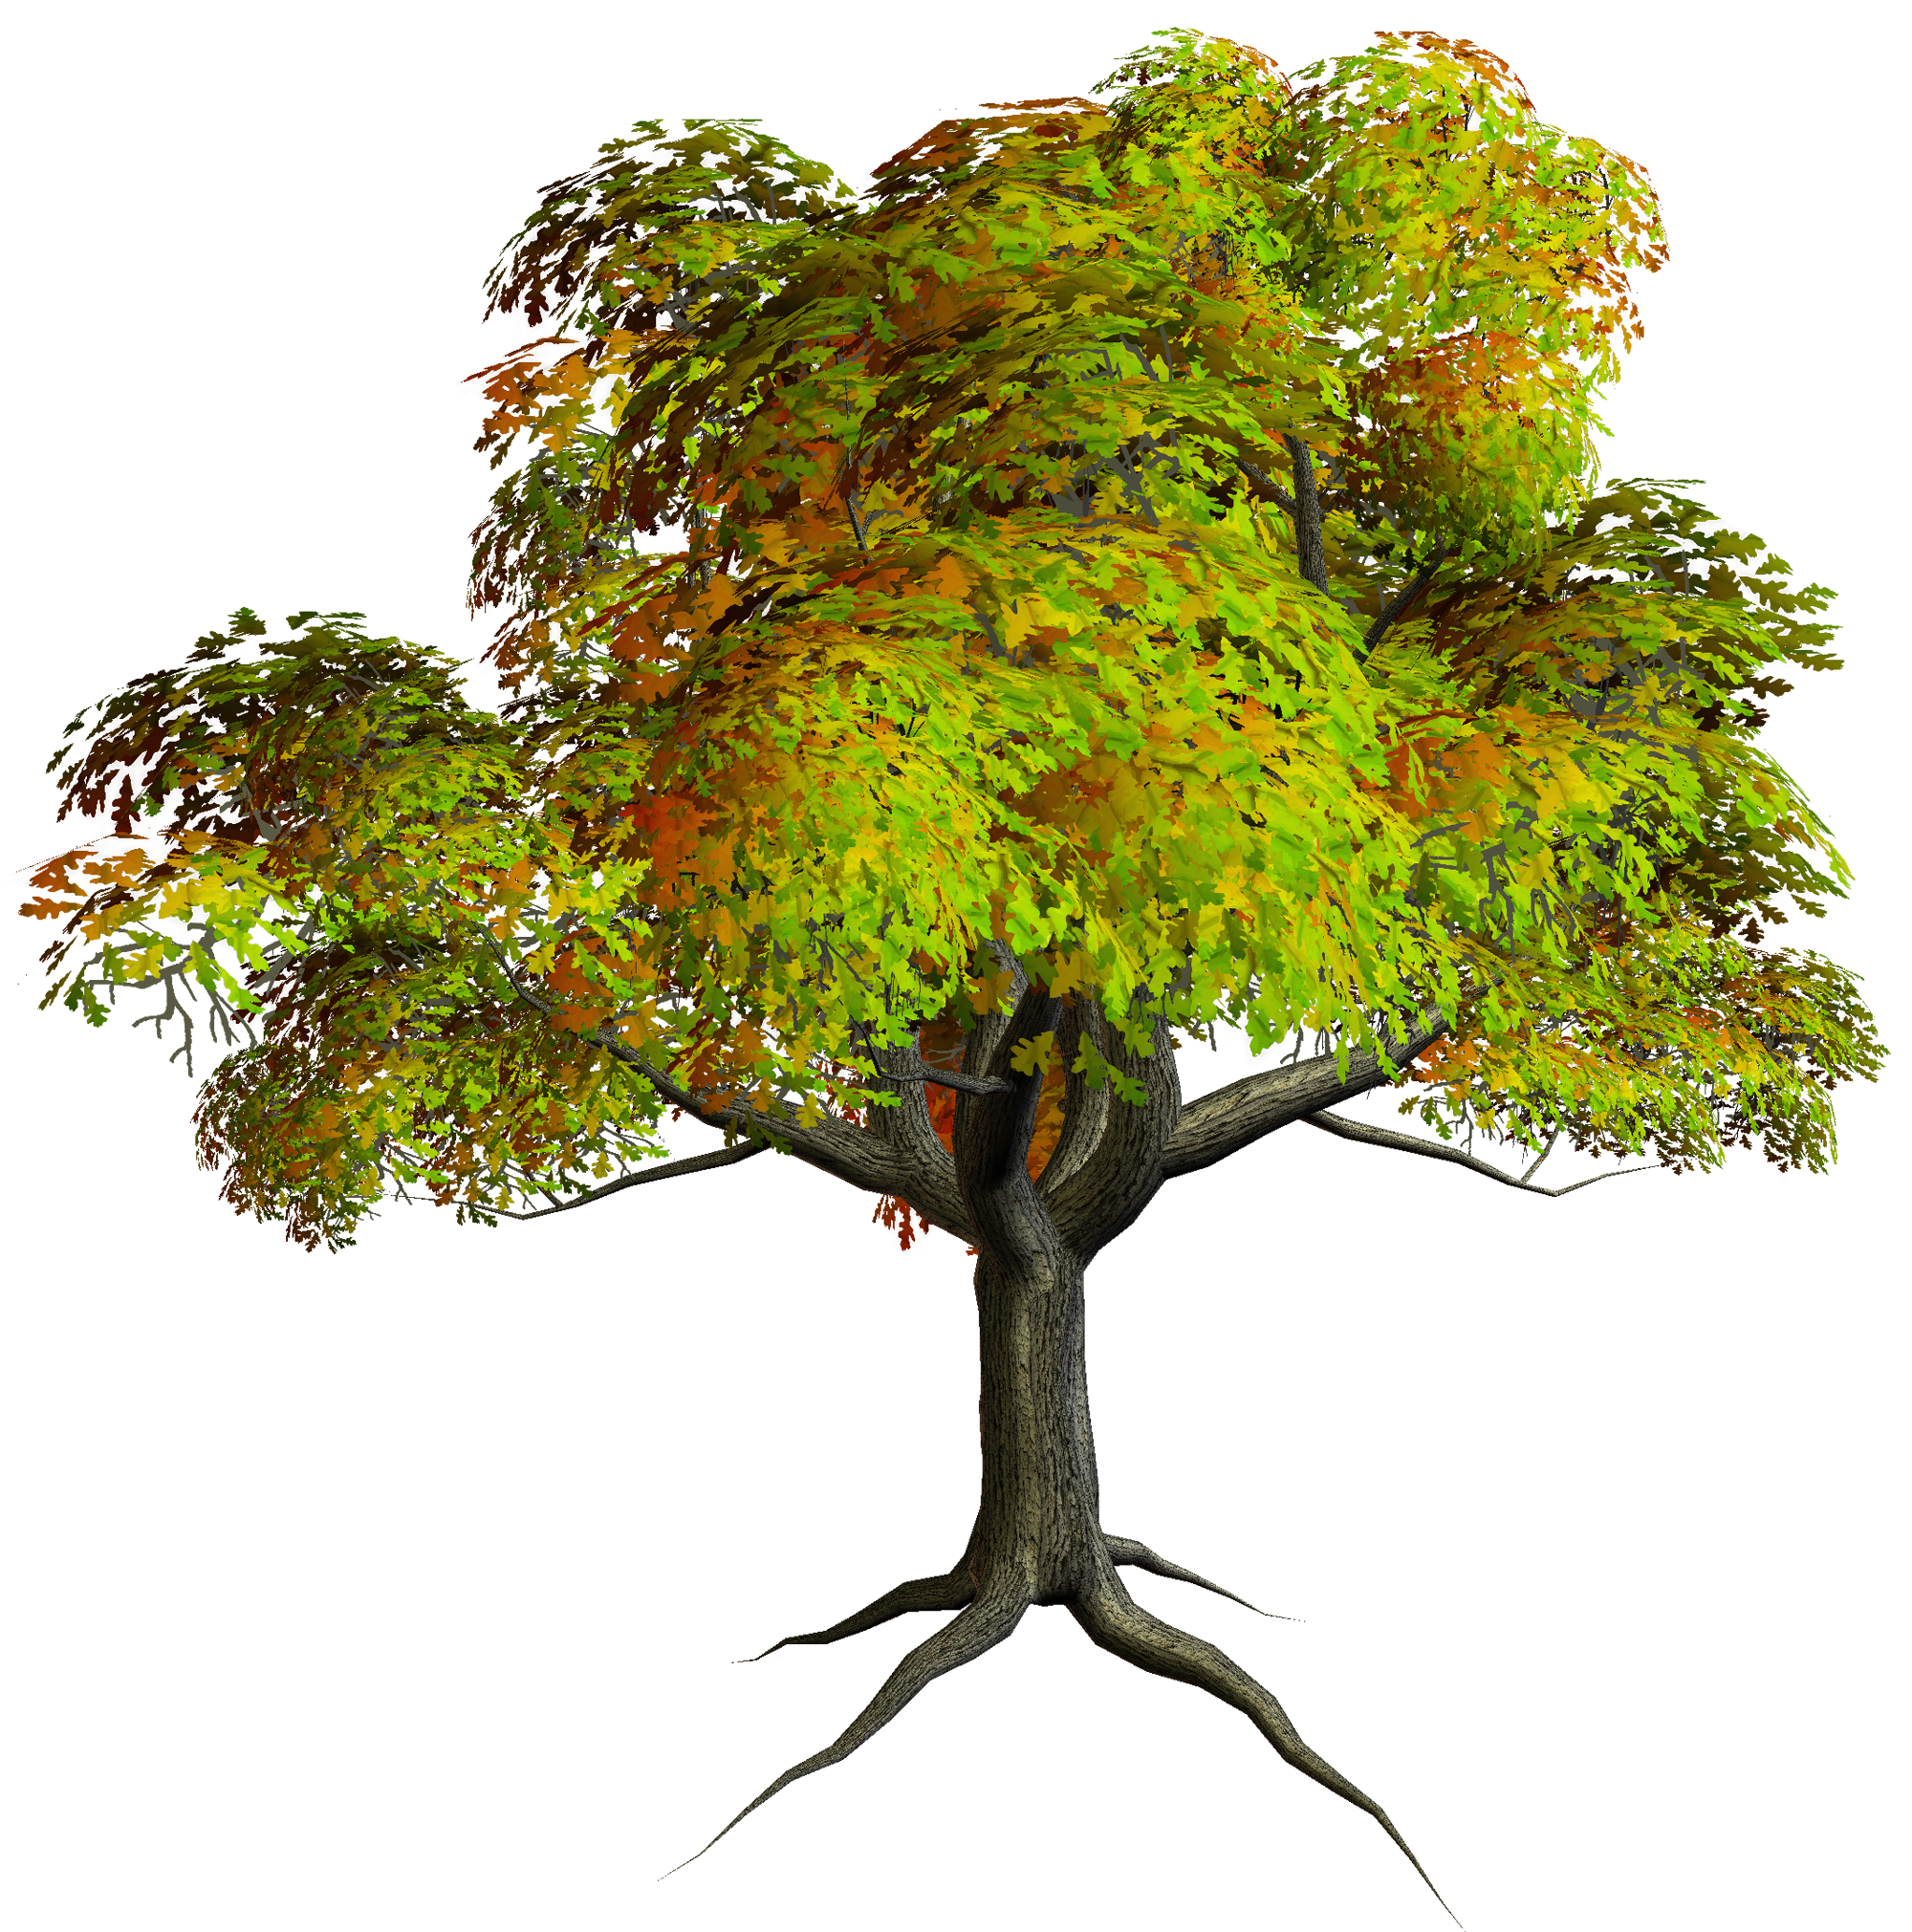 Clipart tree memories. Images free download clip